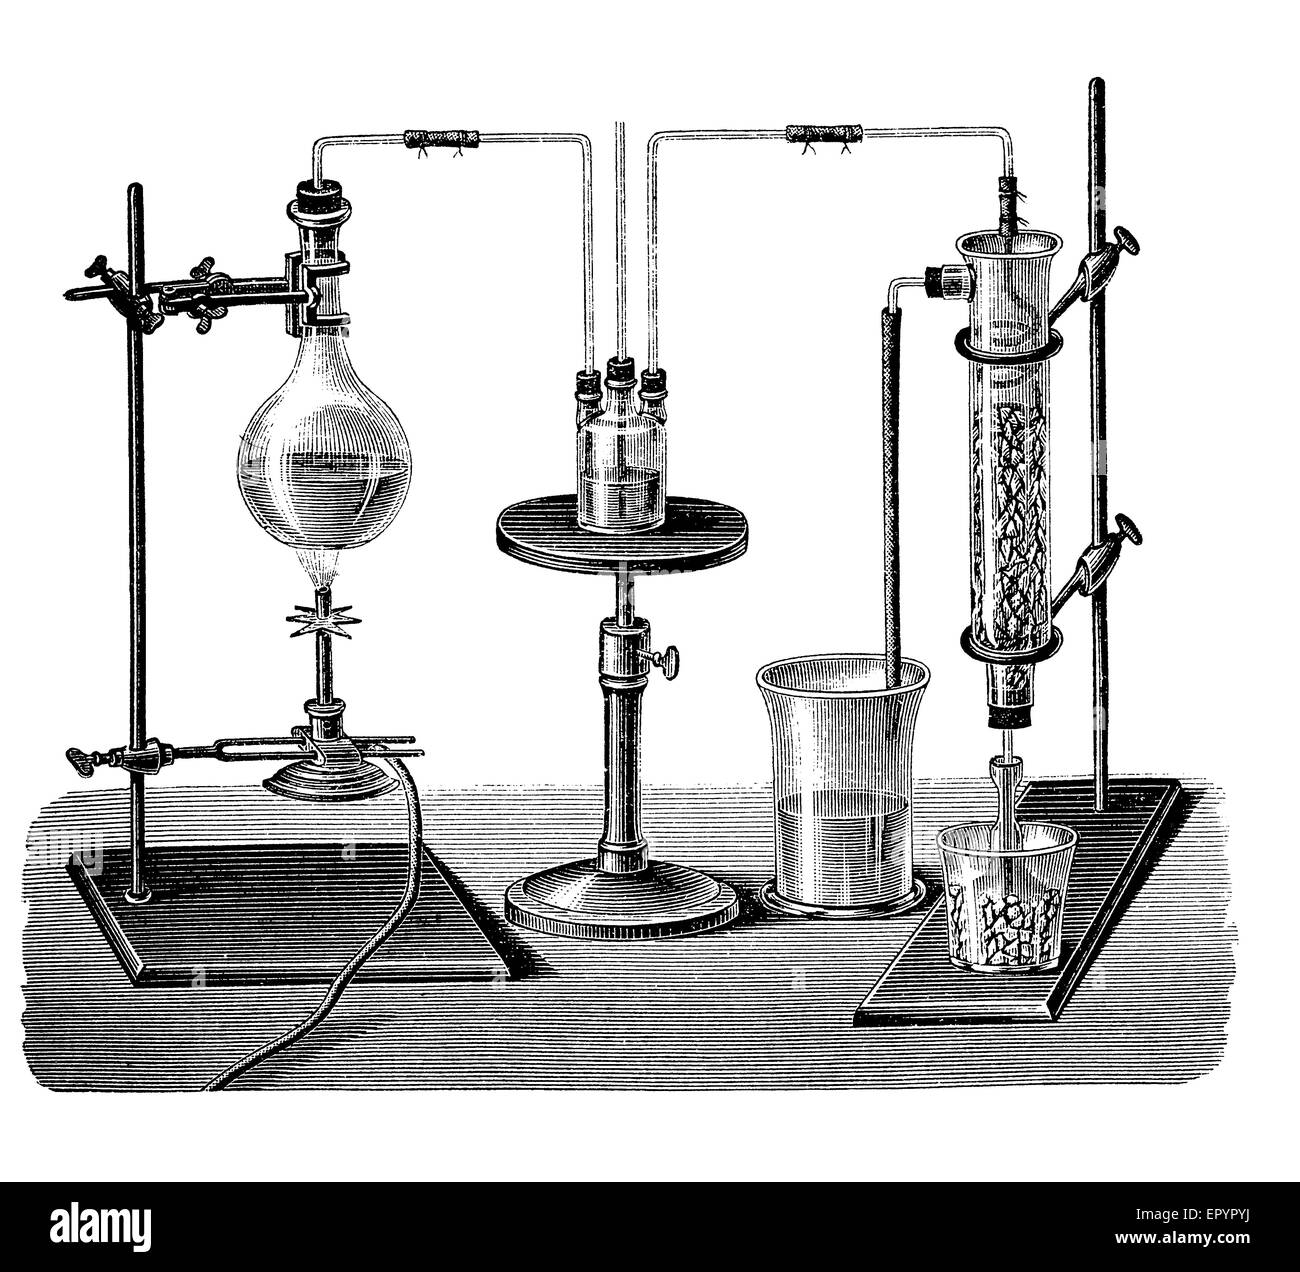 Vintage chemistry lab equipment for sulfur dioxide production. The gas is condensed to liquid form through a mixture - Stock Image